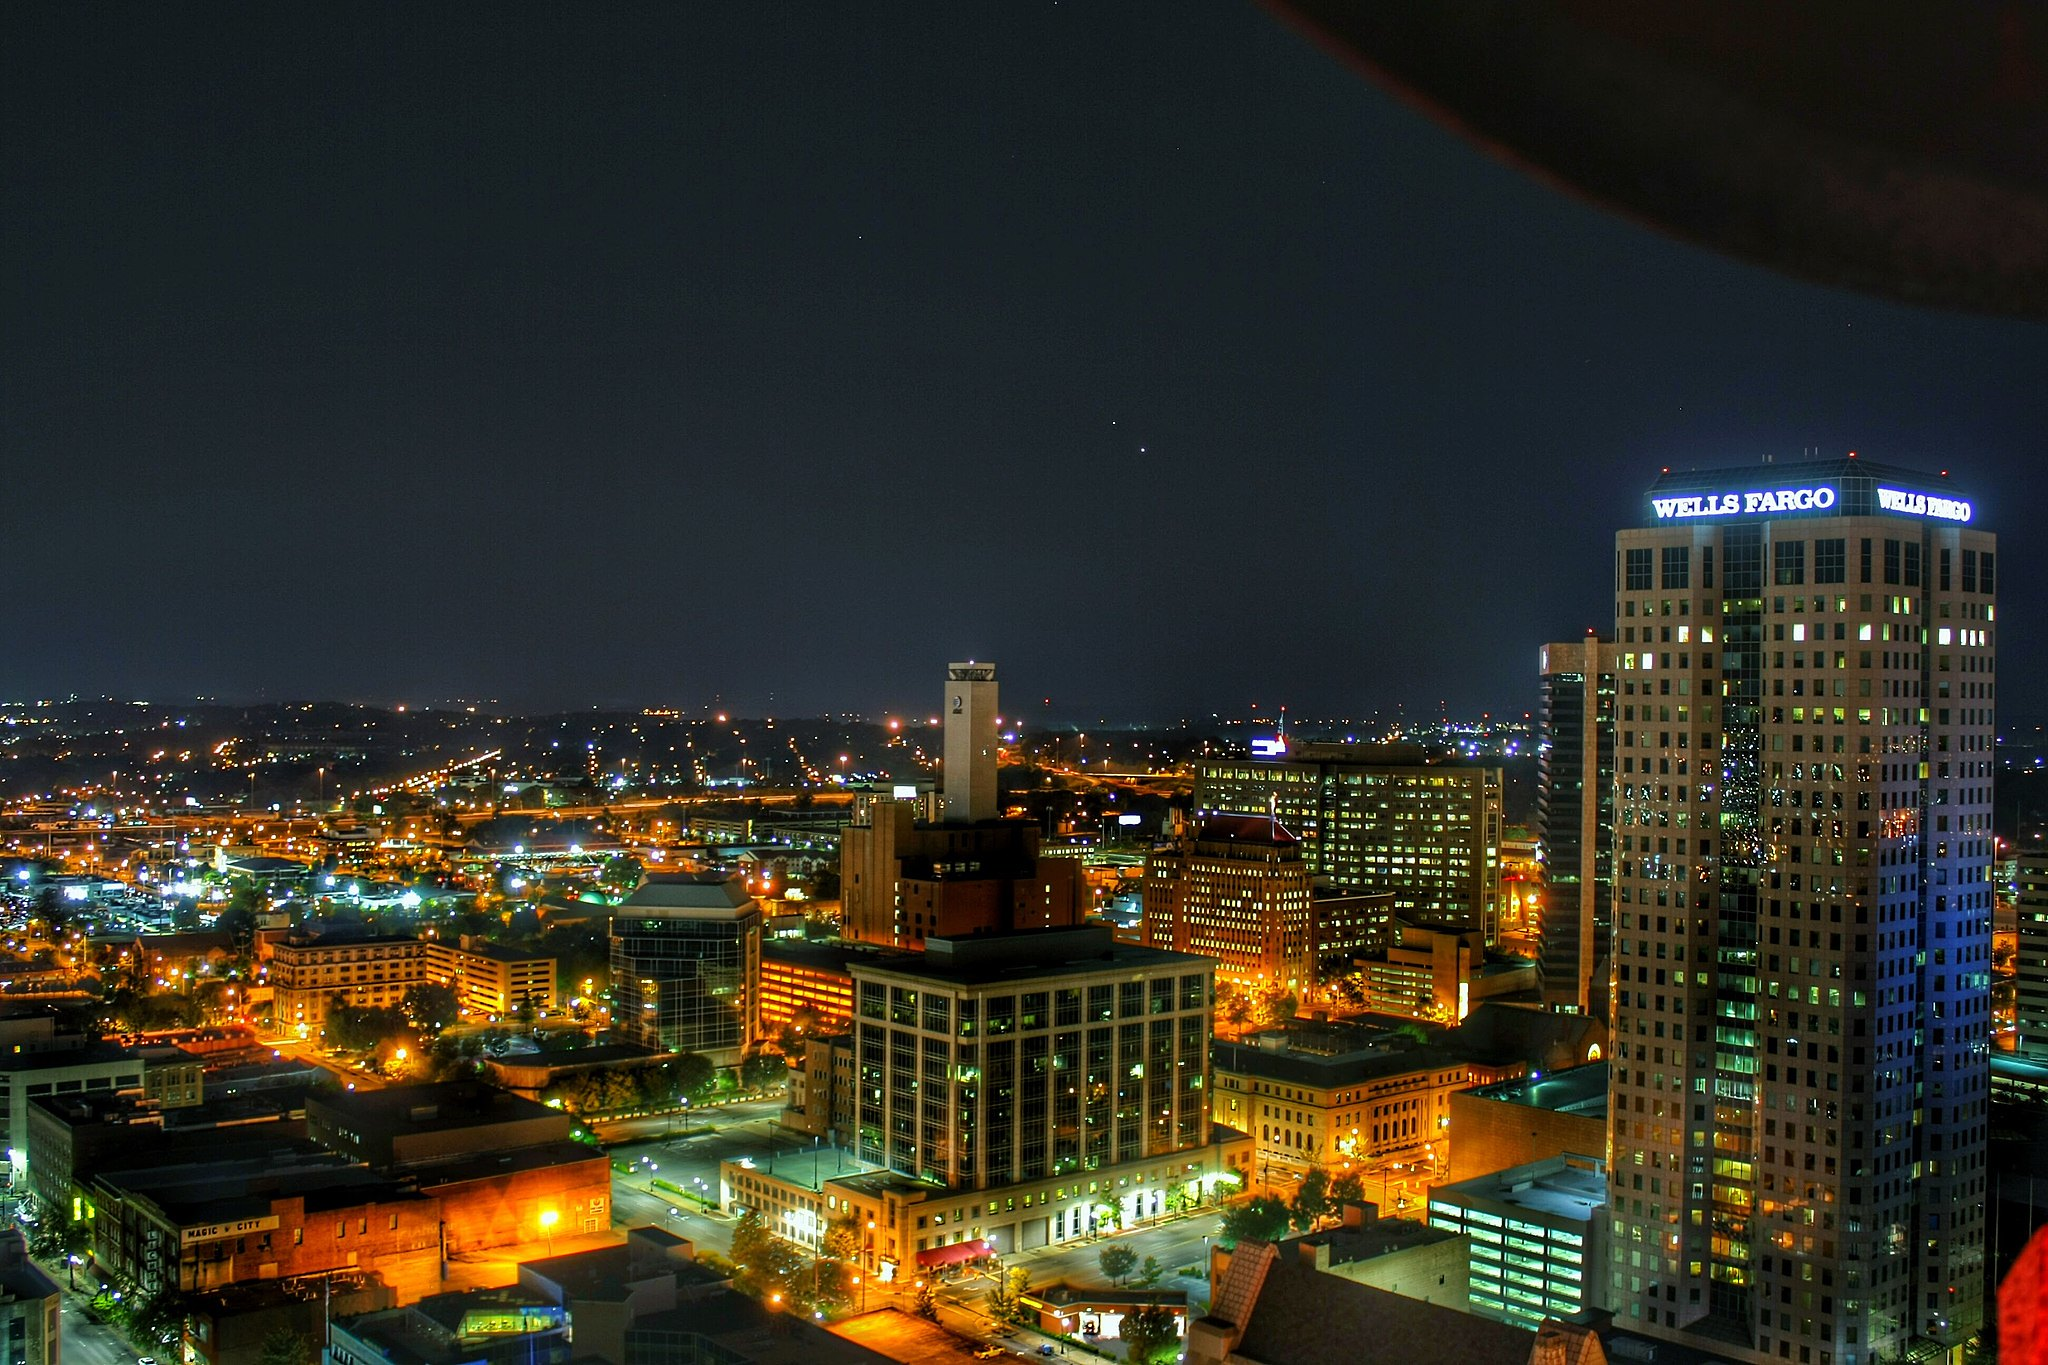 Birmingham, Alabama skyline at night